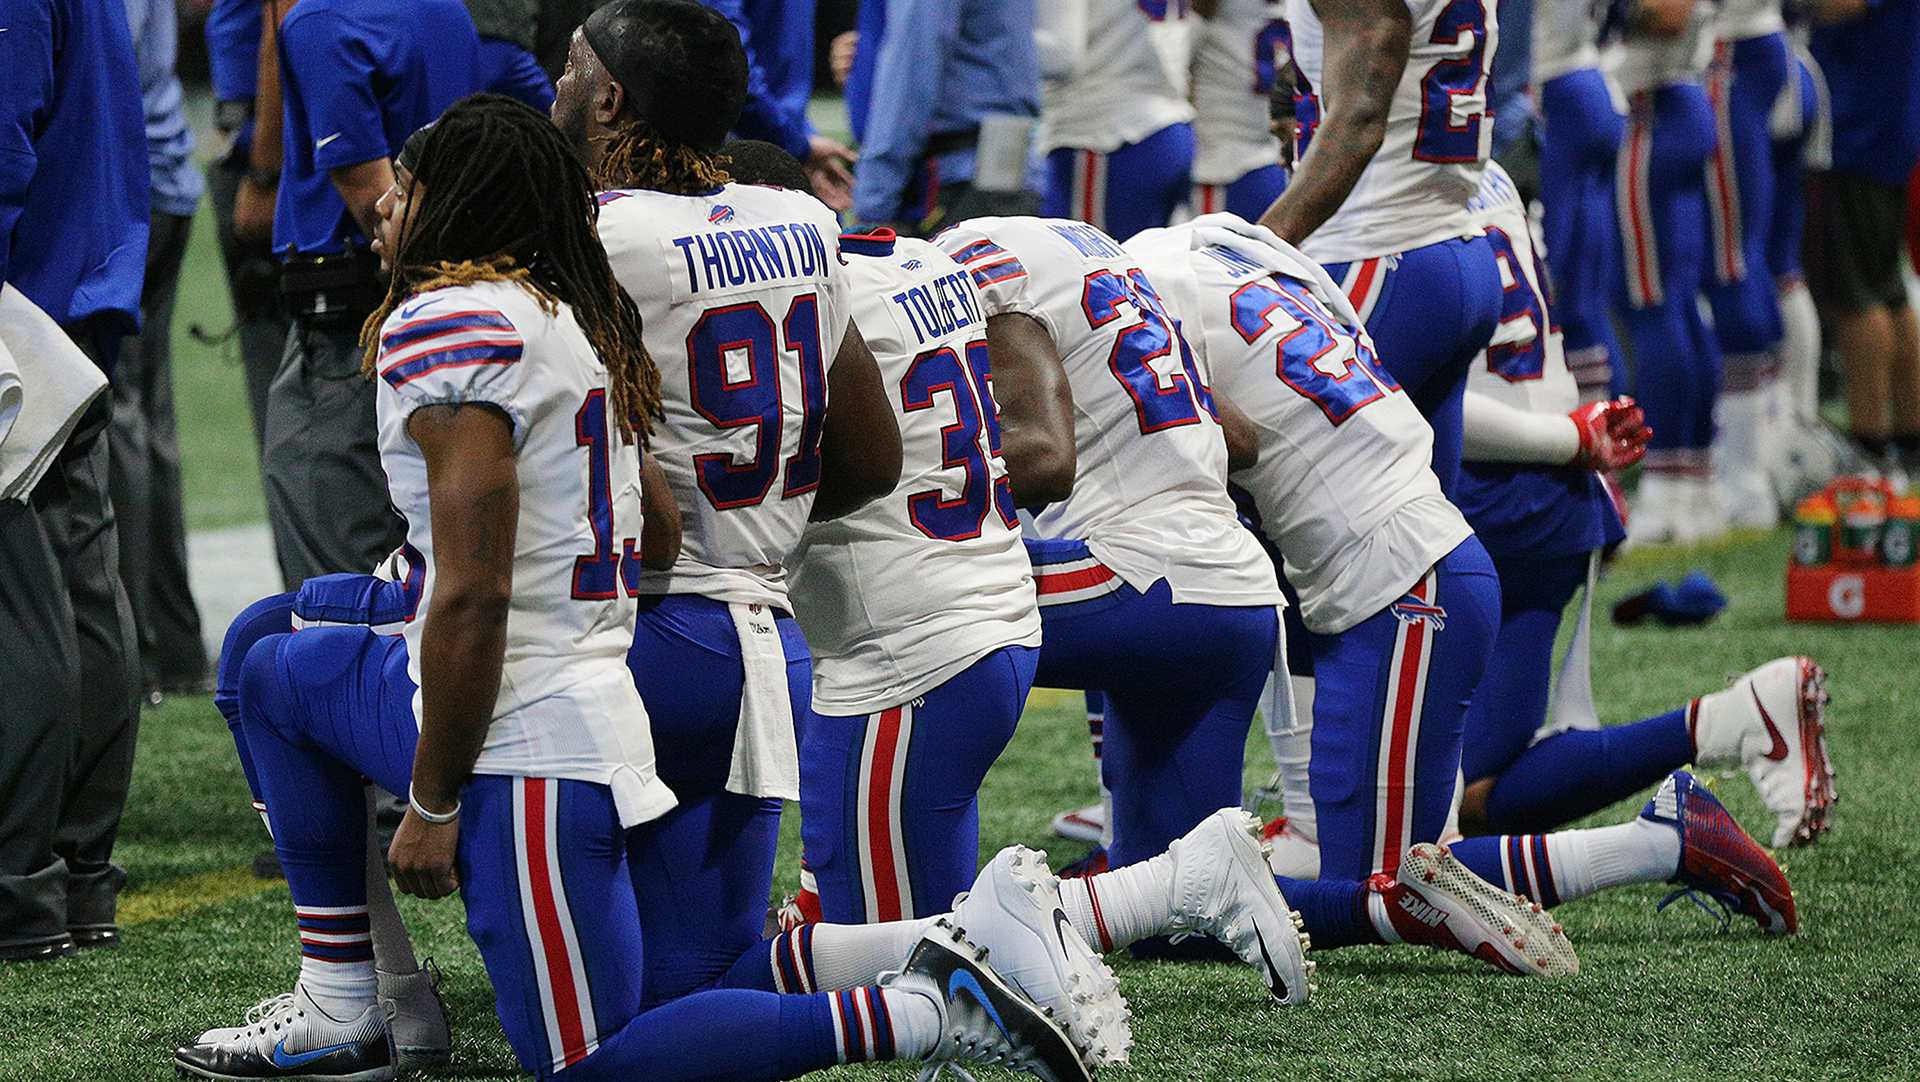 Many of the Buffalo Bill players kneel on the sidelines for the national anthem before the game with the Atlanta Falcons in the land of the free on Oct. 1, 2017 in Atlanta. (Curtis Compton/Atlanta Journal-Constitution/TNS)